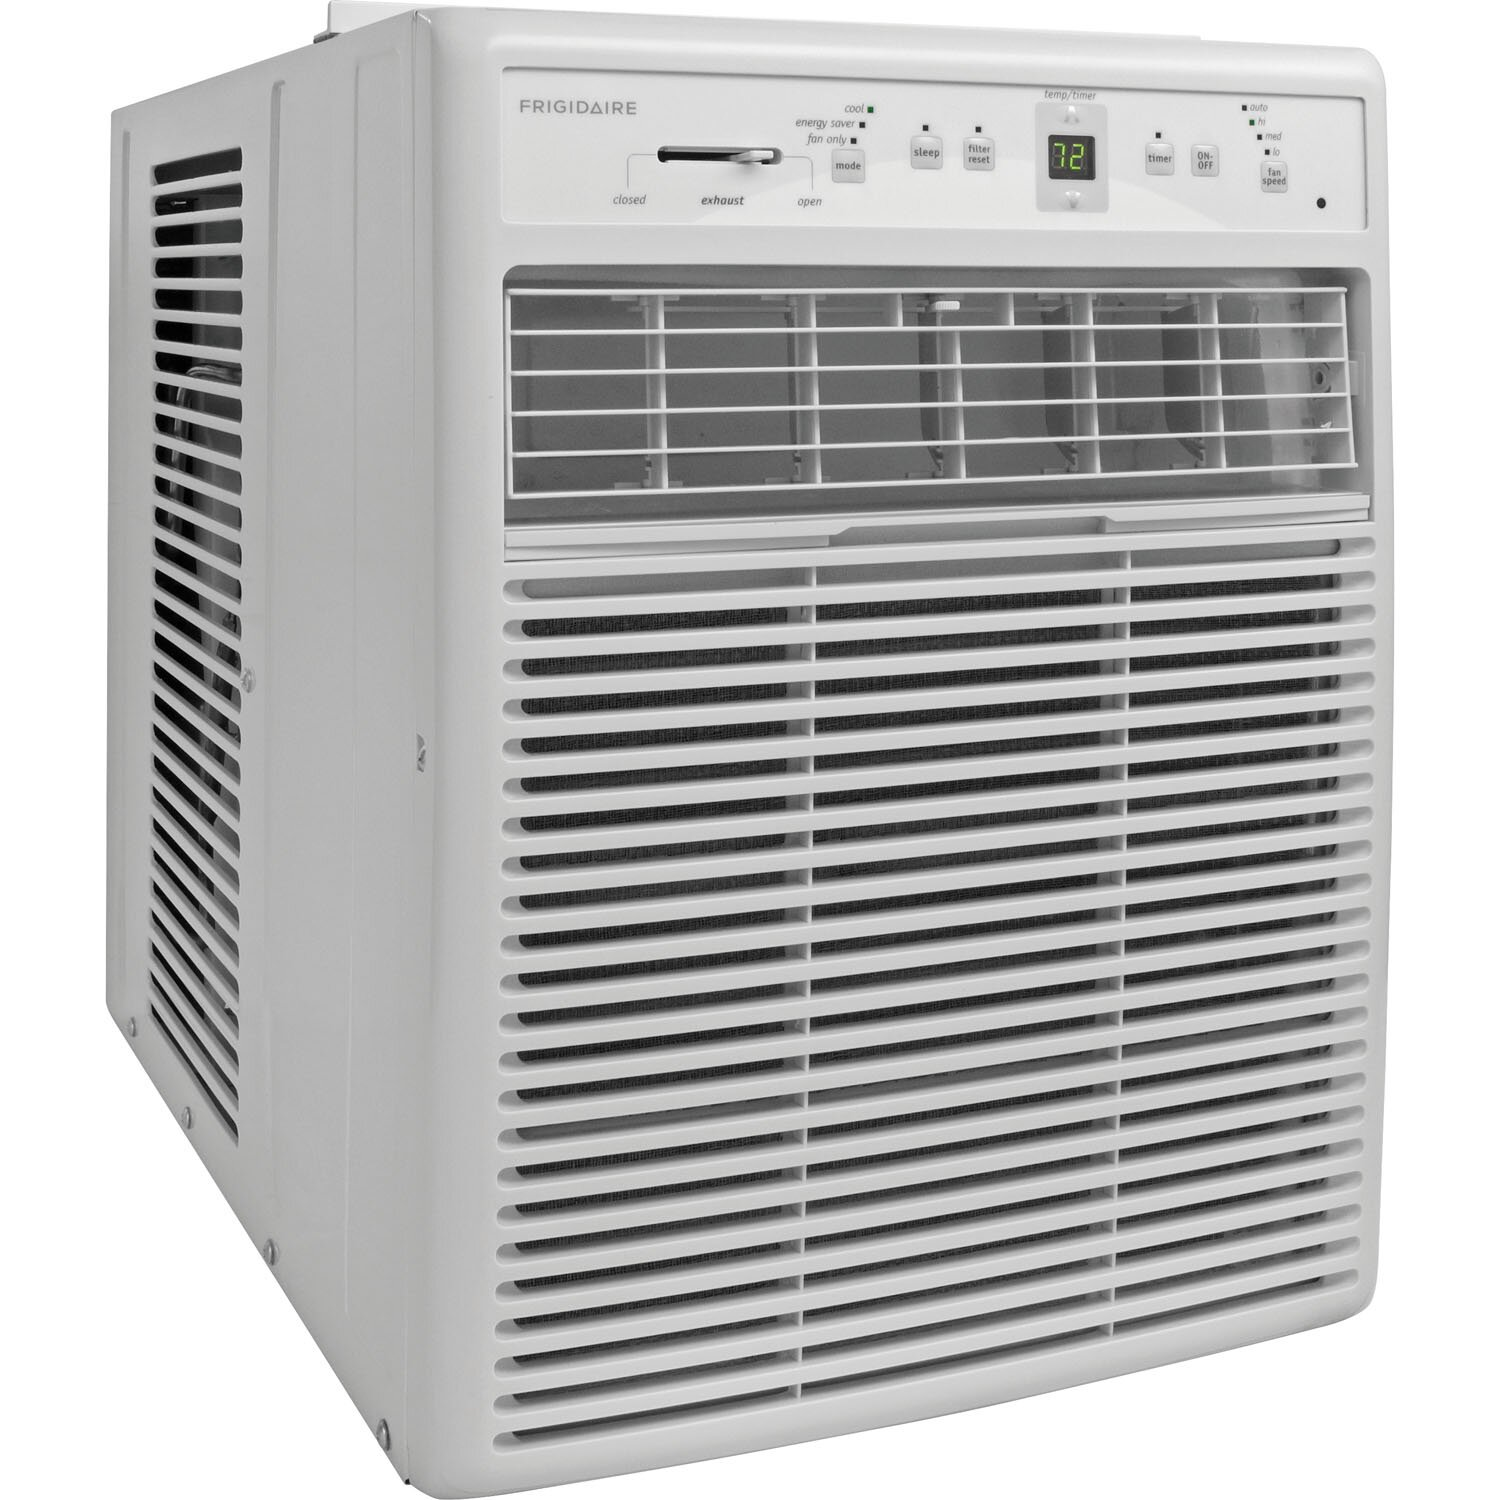 & Cooling Casement Air Conditioners Frigidaire SKU: FRI1835 #66784C